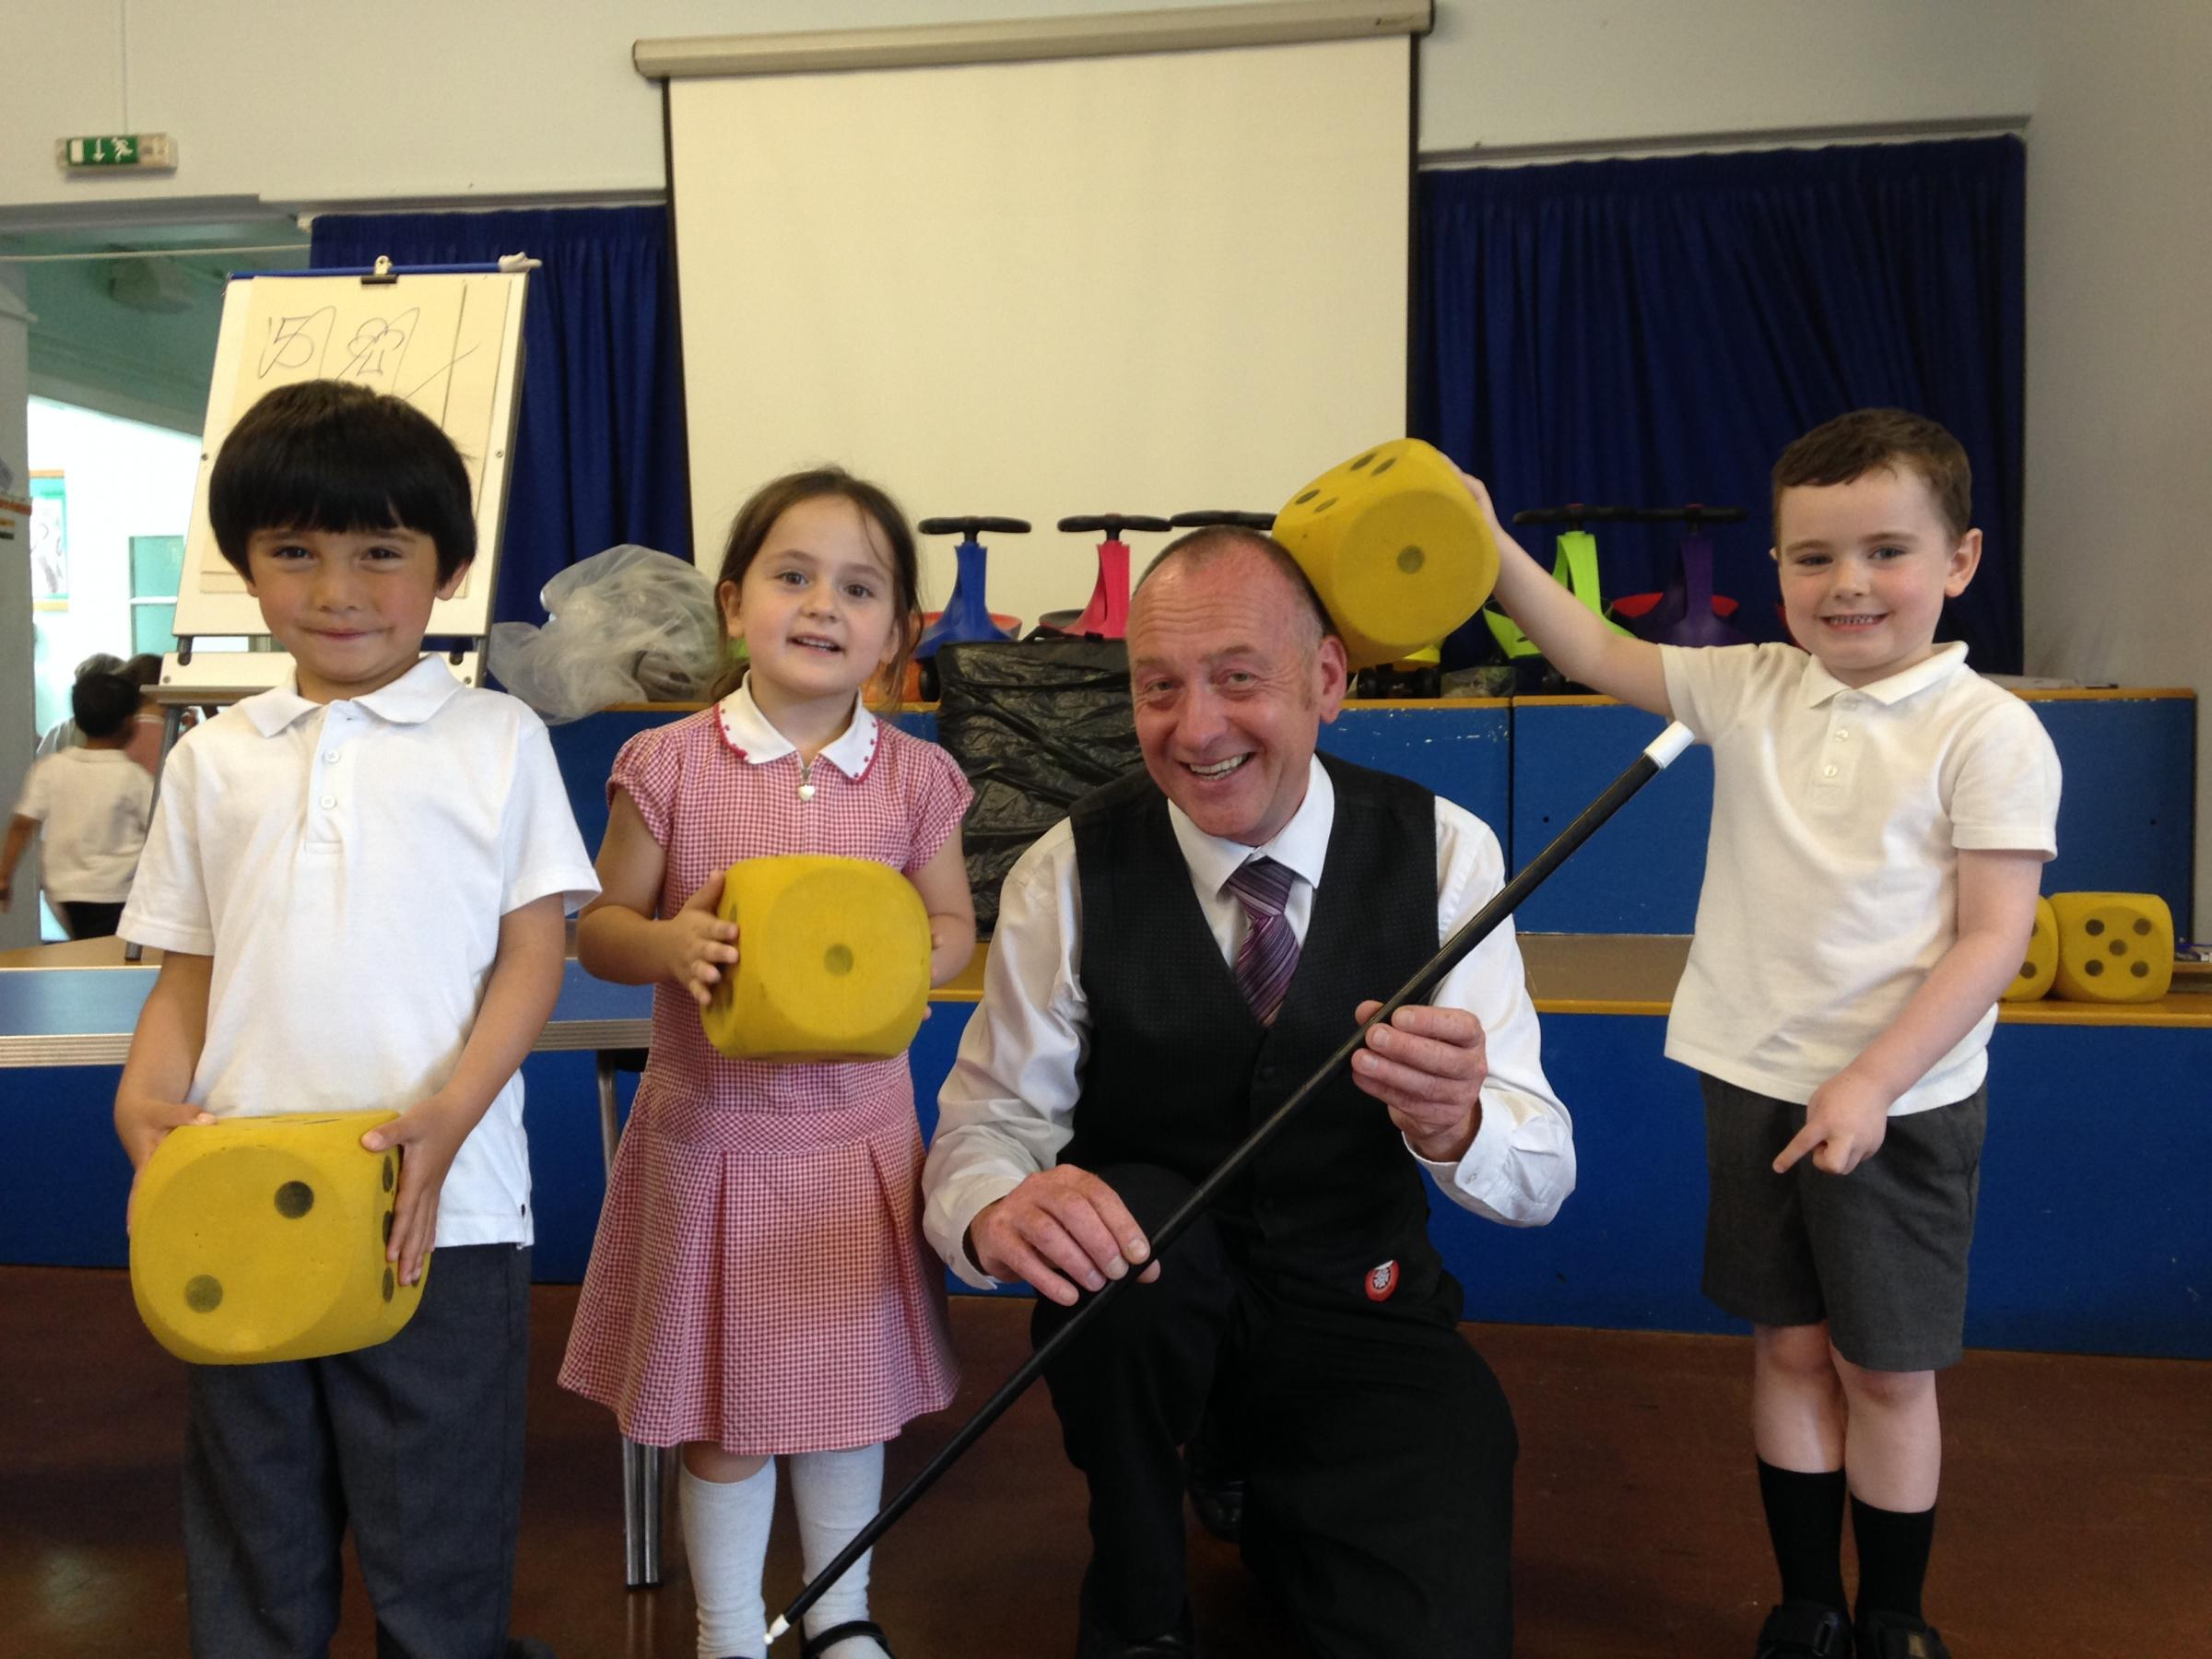 Add-bracadabra: Magician Tony Charles with pupils (from left) Julian Tanca, Amelie Bull and Hayden Lowey